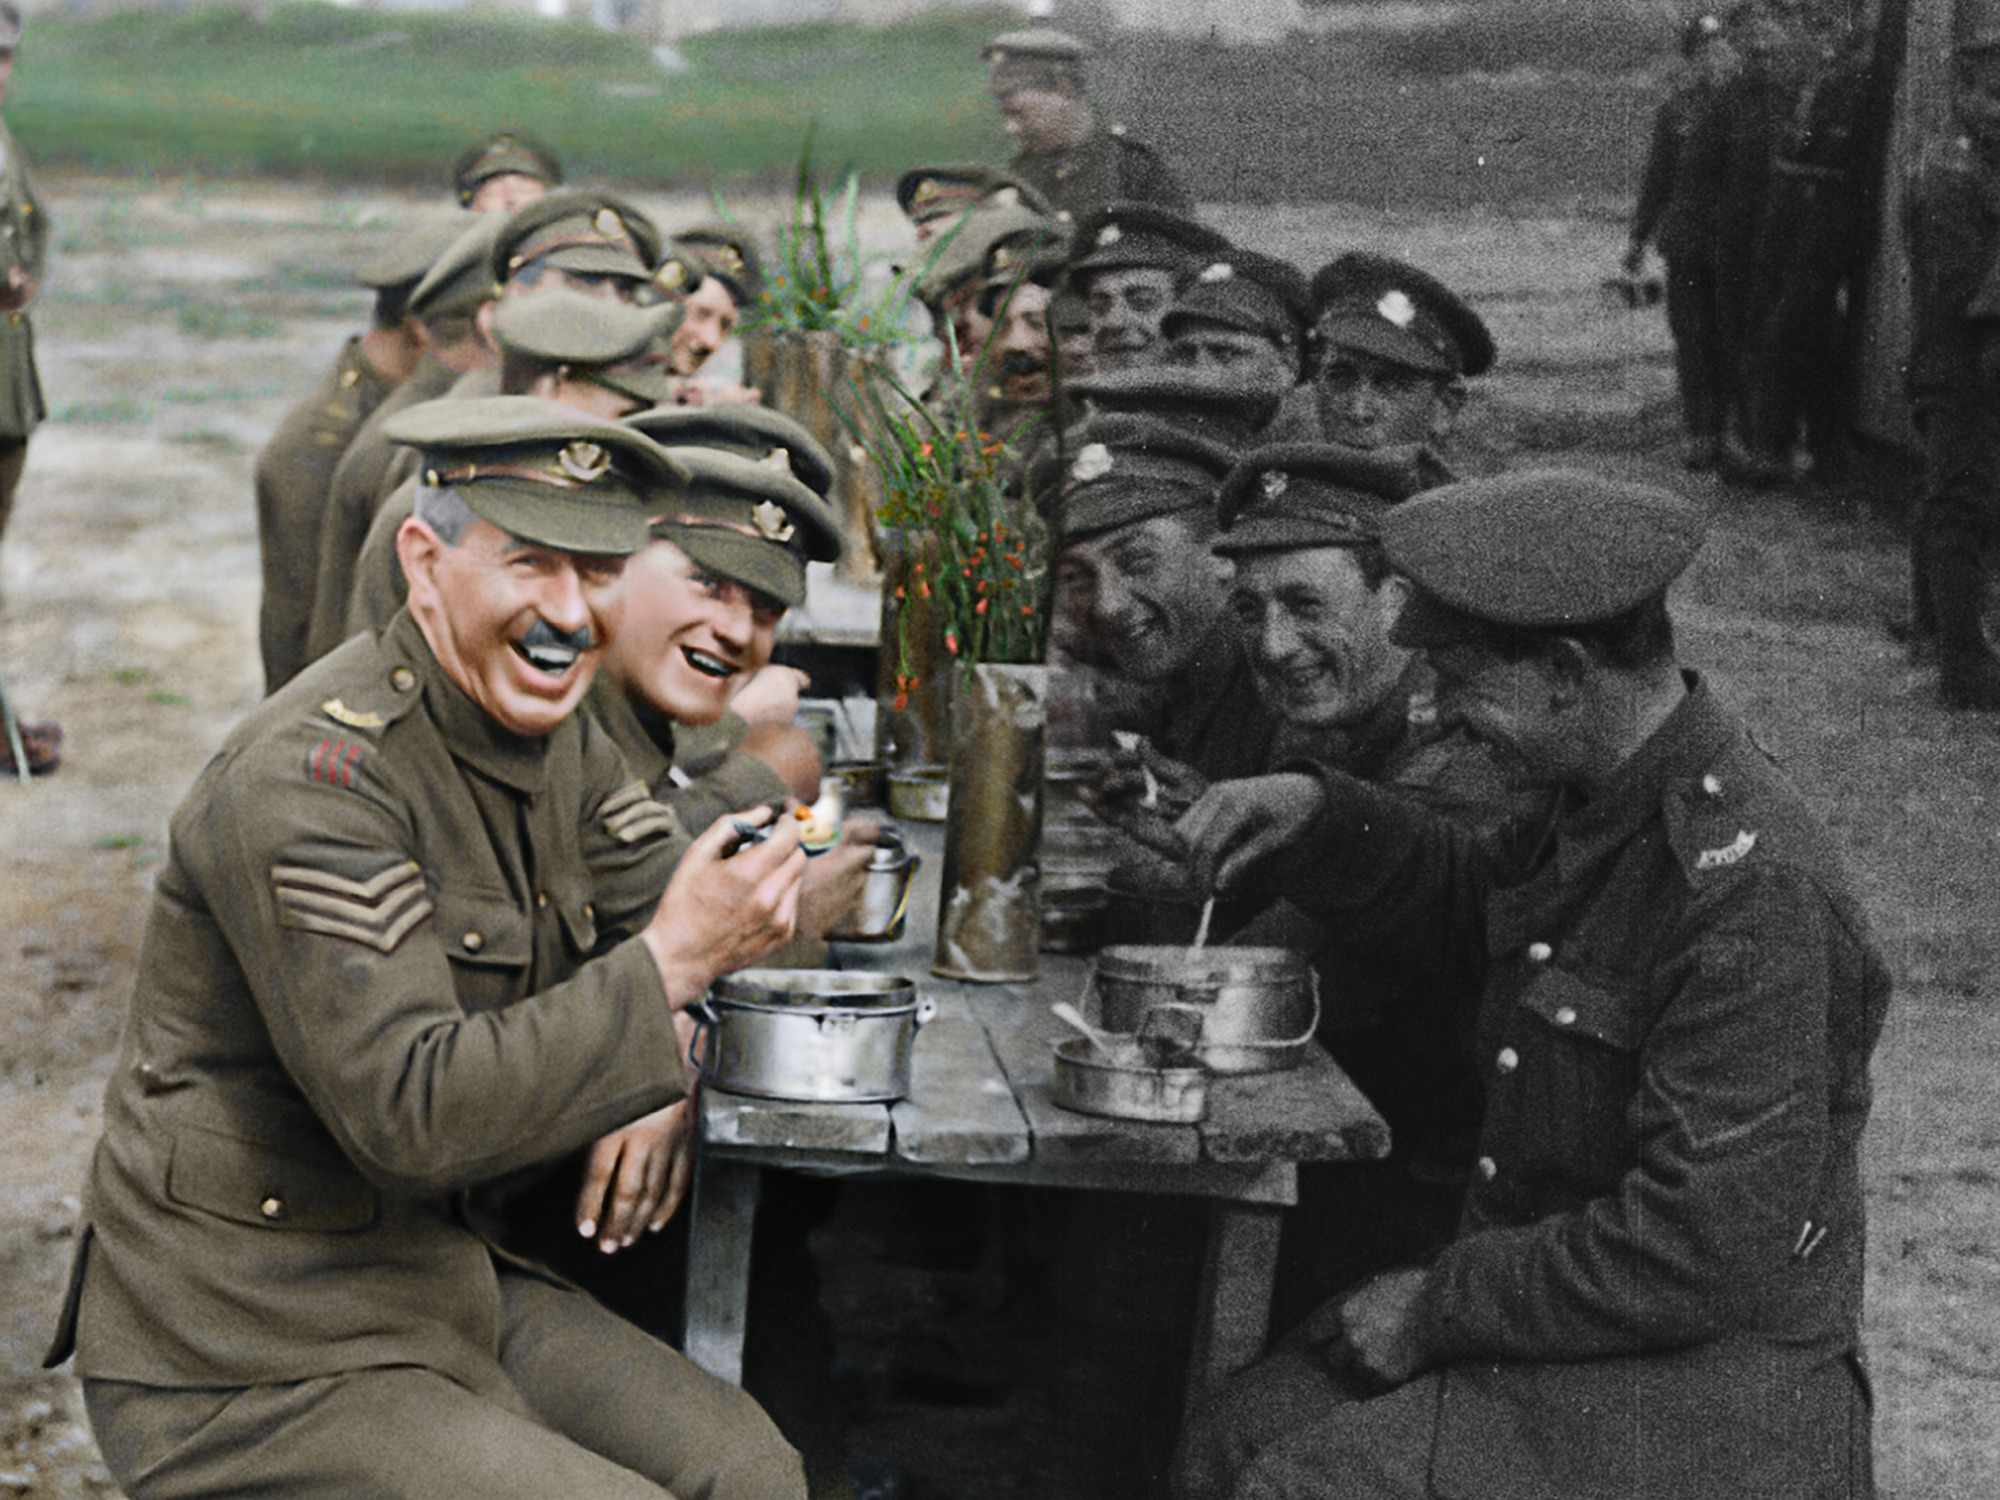 They Shall Not Grow Old. (Image Credit: BBC/Wingnut Films with Peter Jackson/IWM)